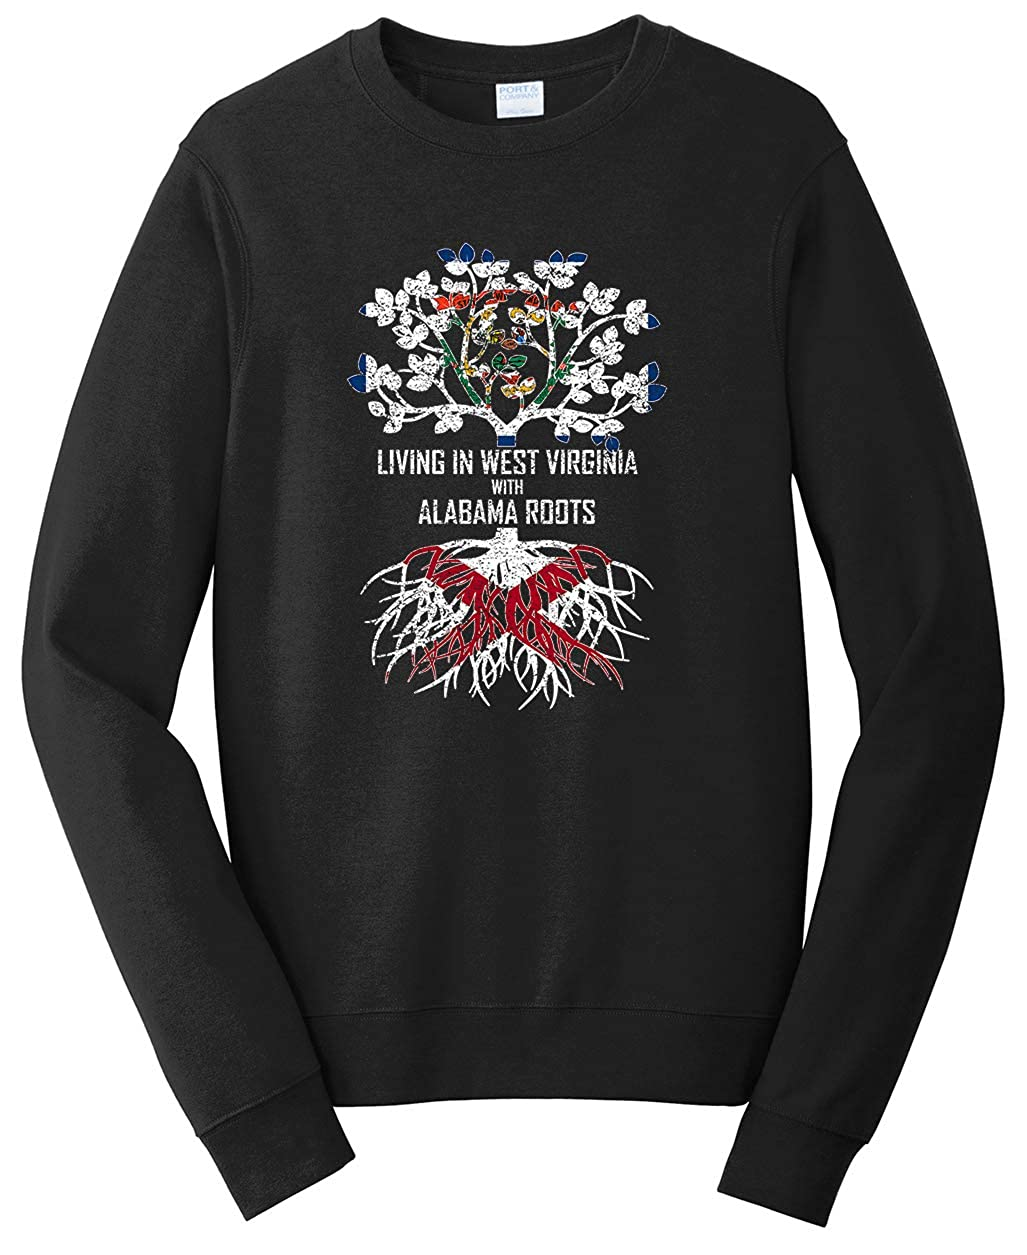 Tenacitee Unisex Living in West Virginia Alabama Roots Sweatshirt